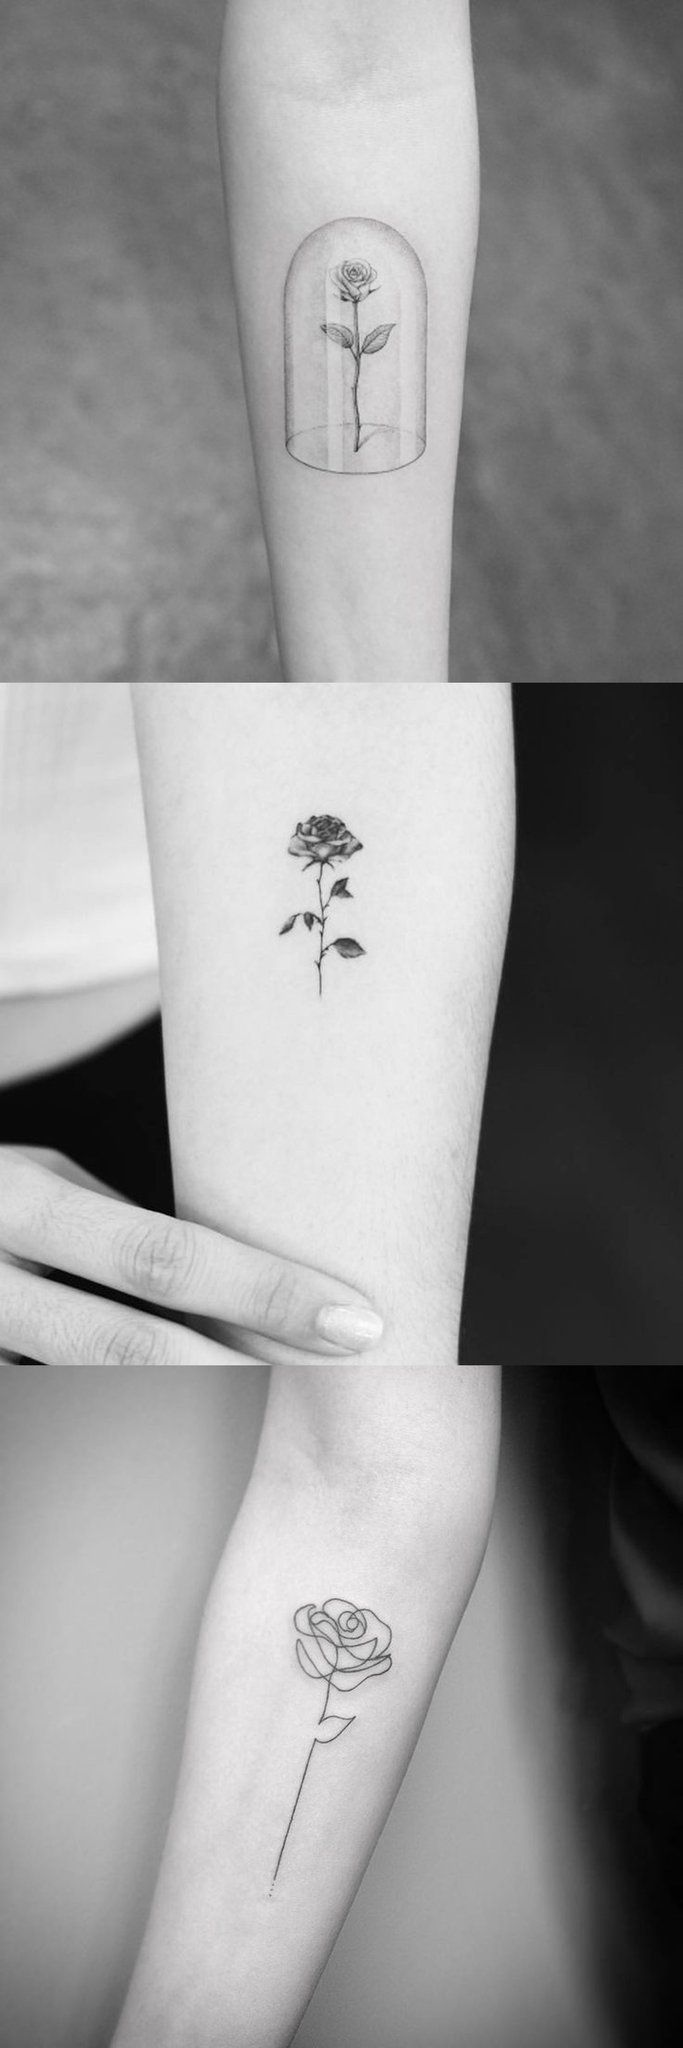 Simple Rose Arm Tattoo Ideas At Mybodiart Com Black And White